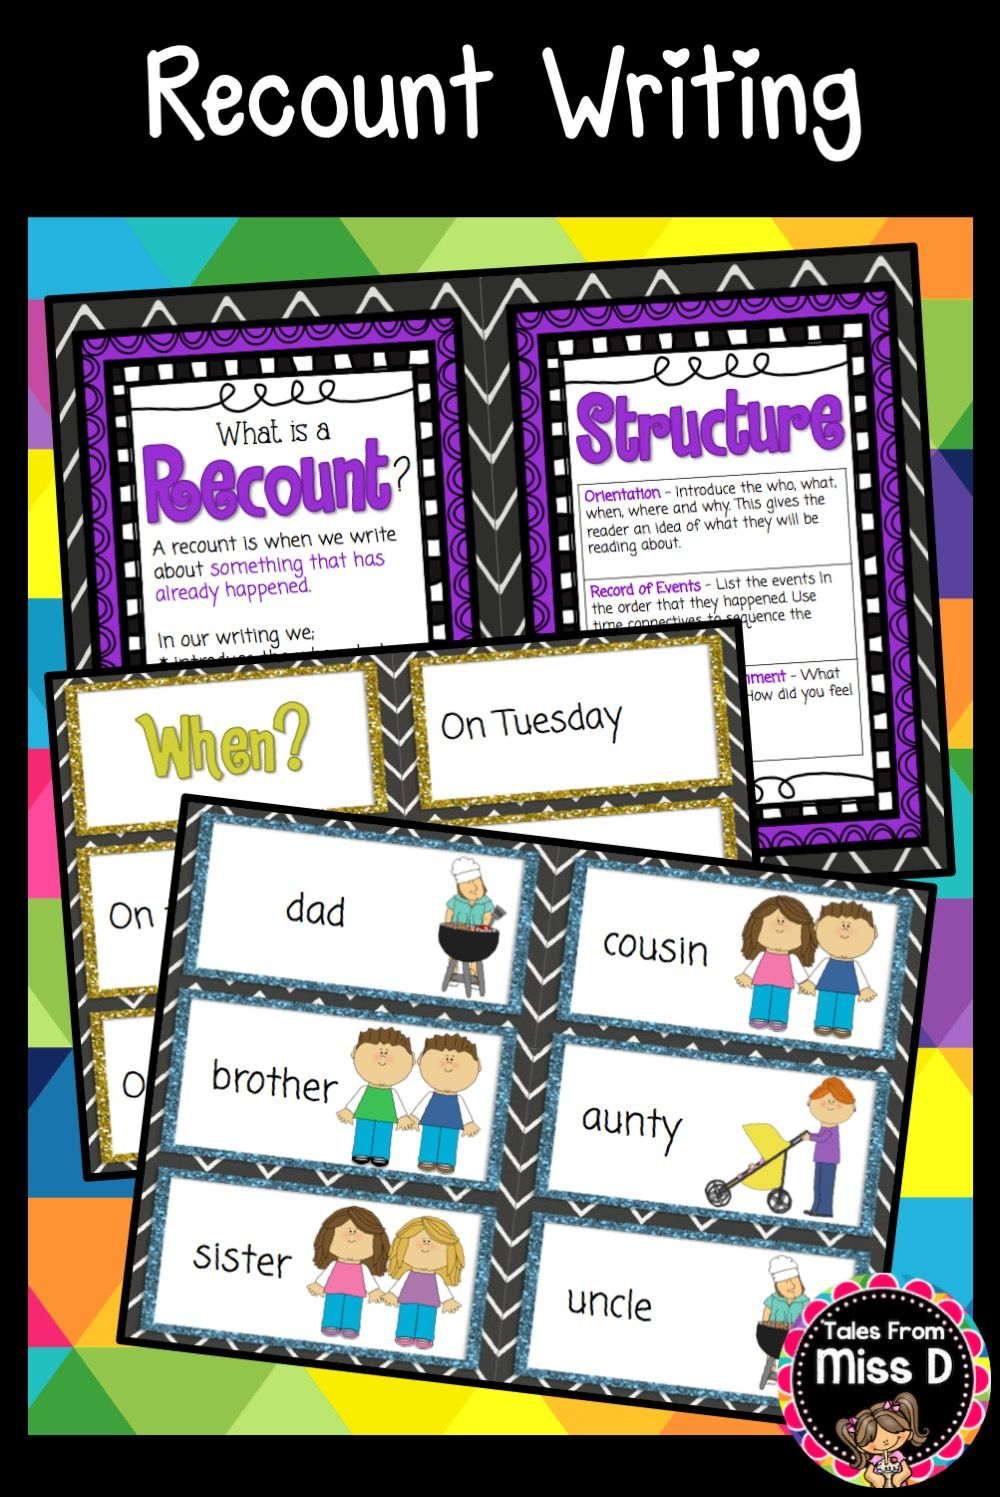 Latest teaching and learning ideas